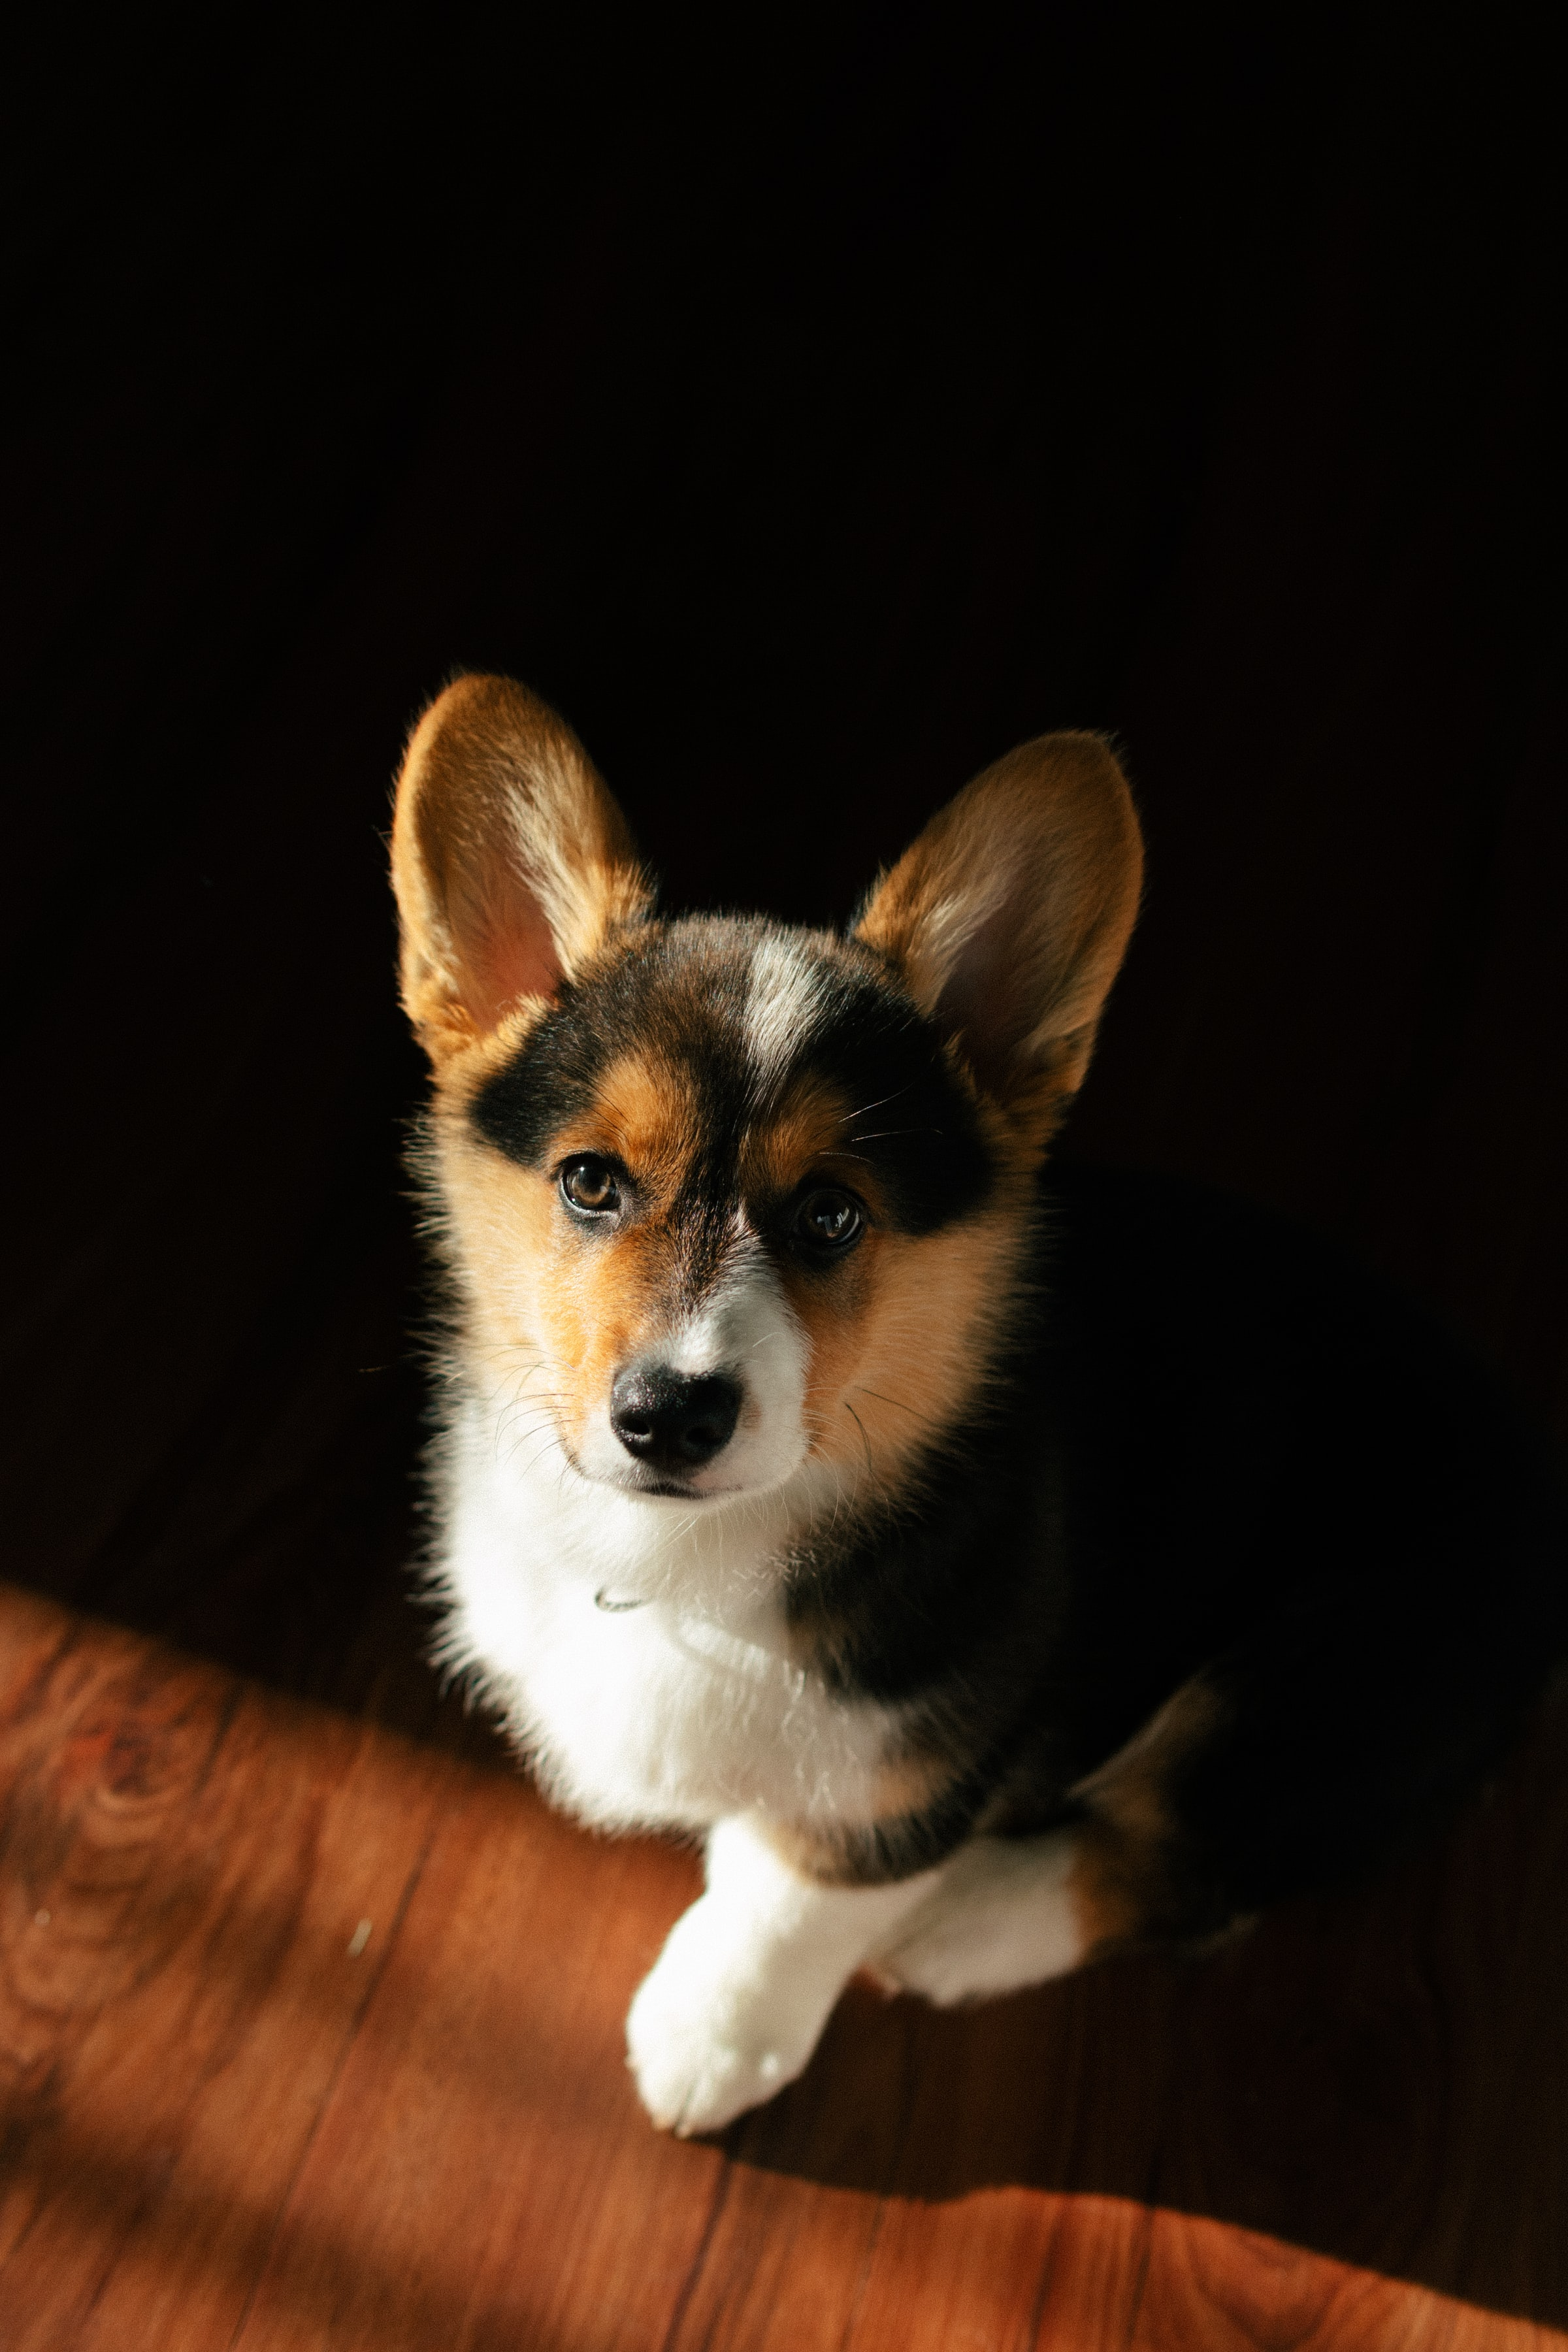 79924 download wallpaper Animals, Corgi, Dog, Puppy, Pet screensavers and pictures for free